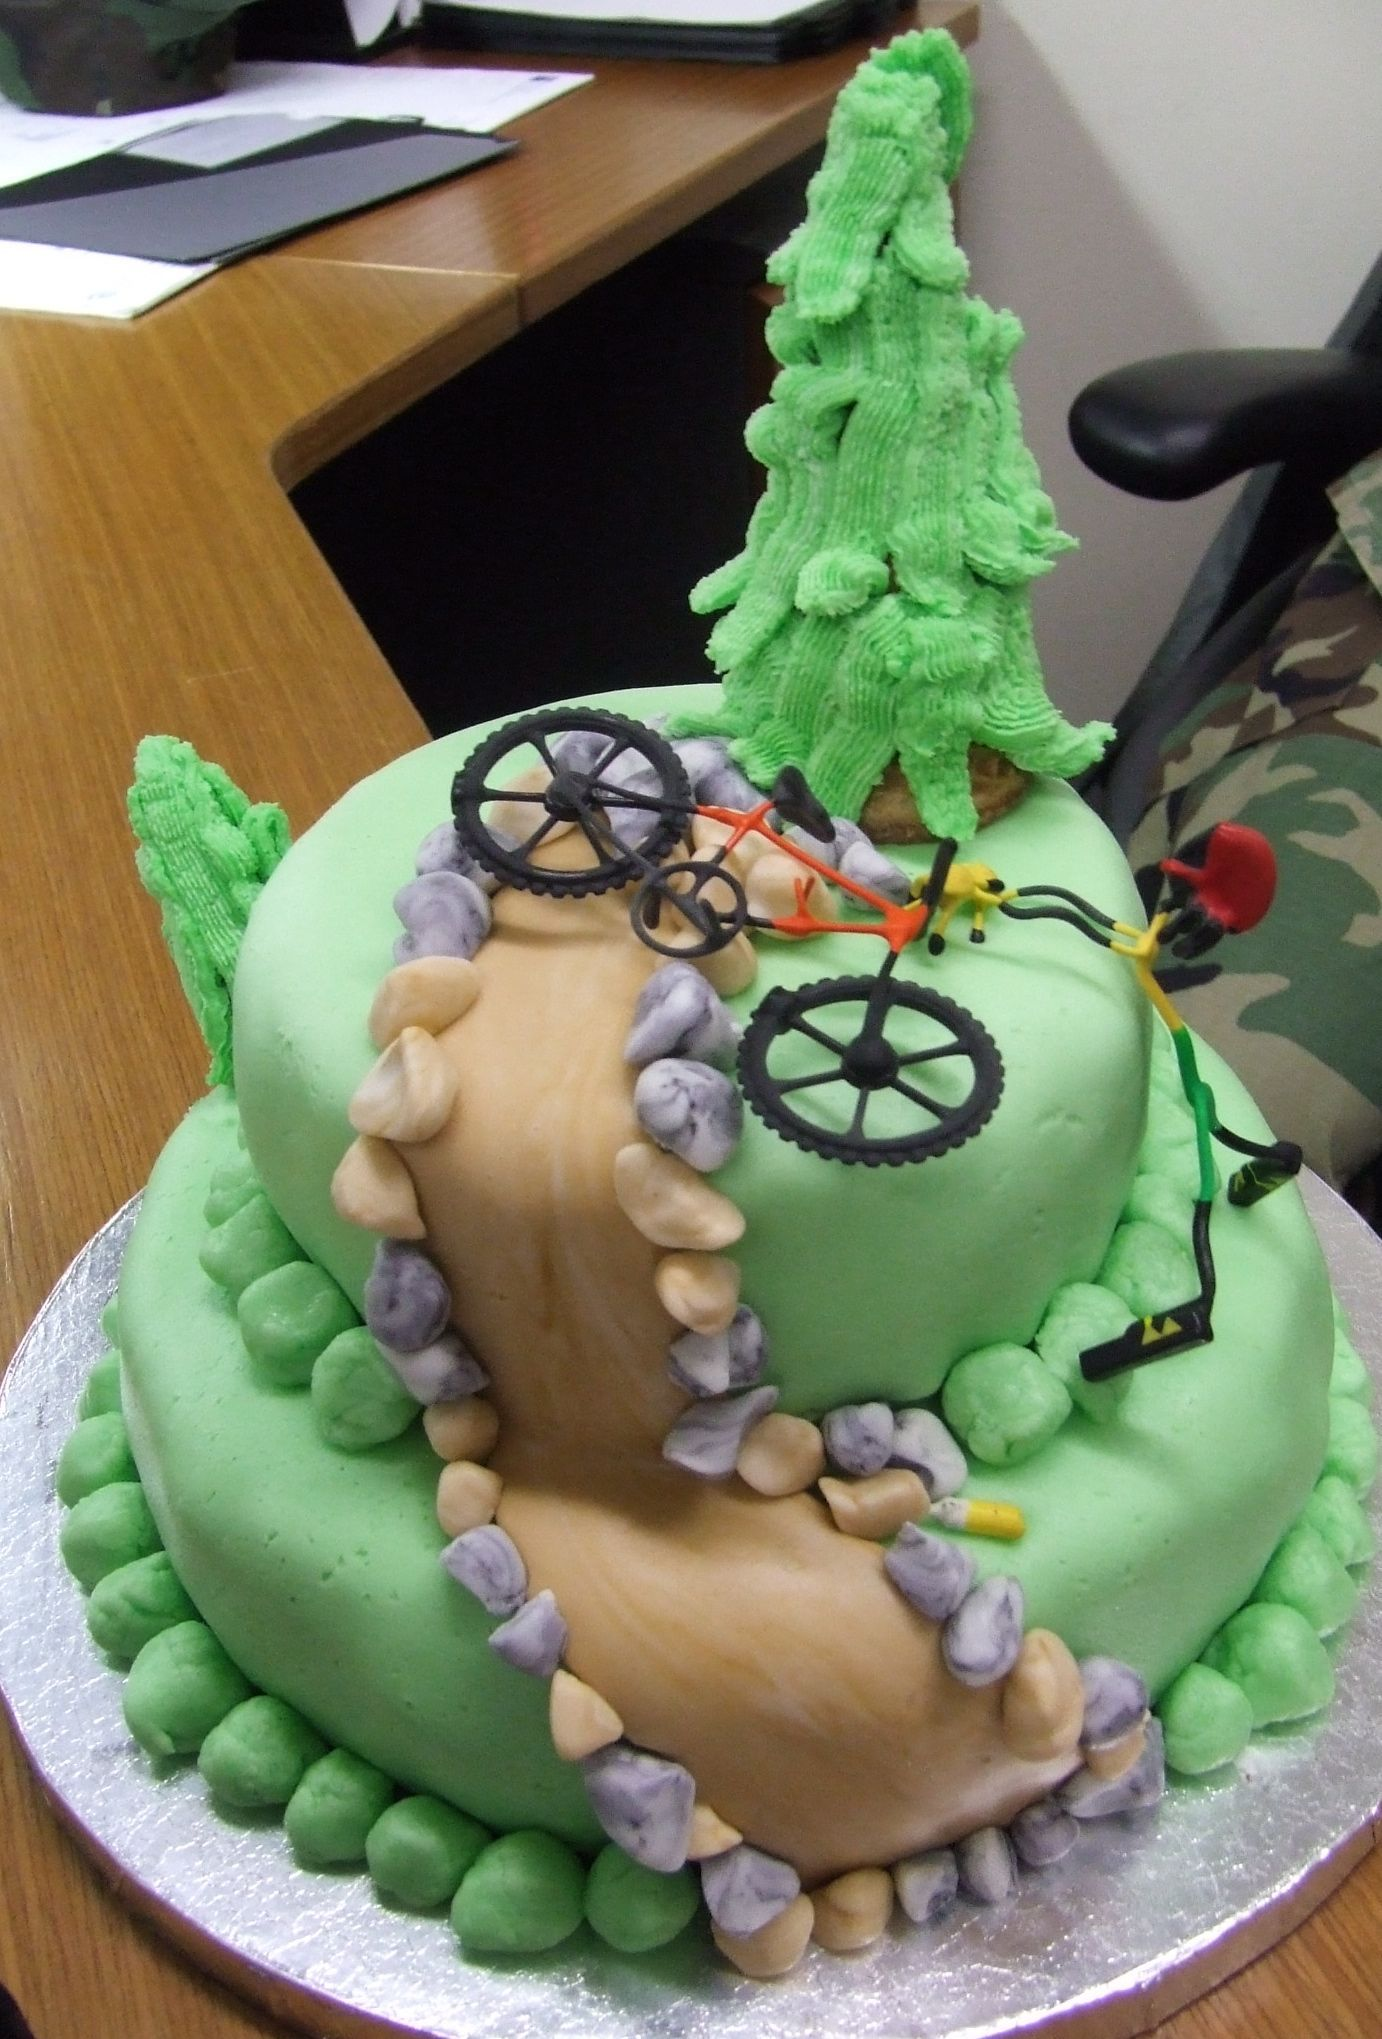 My husbands mountain bike cake Inspired by shenninger Here is